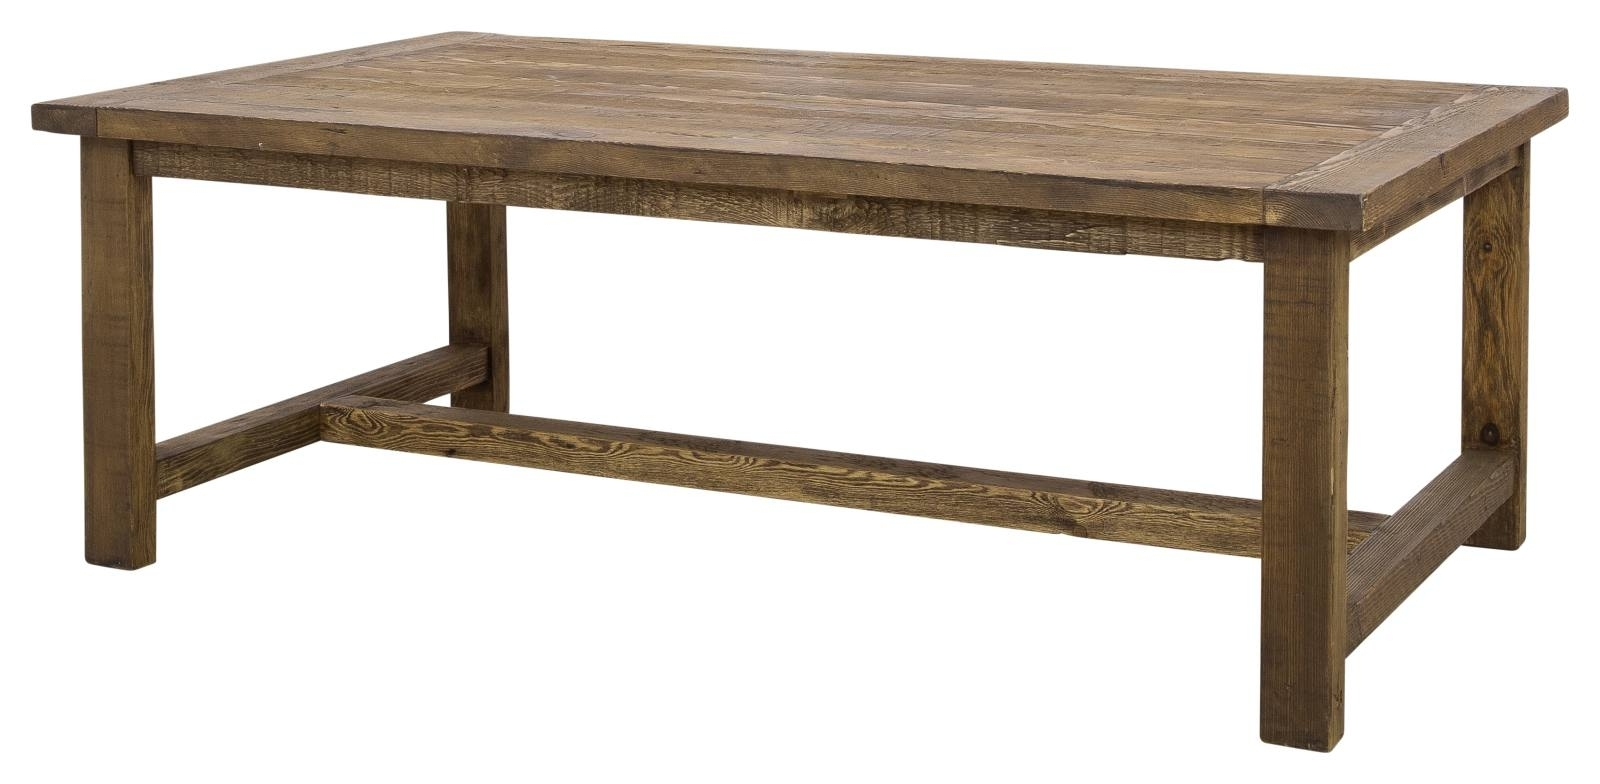 Landon Recycled Pine Coffee Table, Natural – Coffee Tables With Newest Natural Pine Coffee Tables (View 9 of 20)